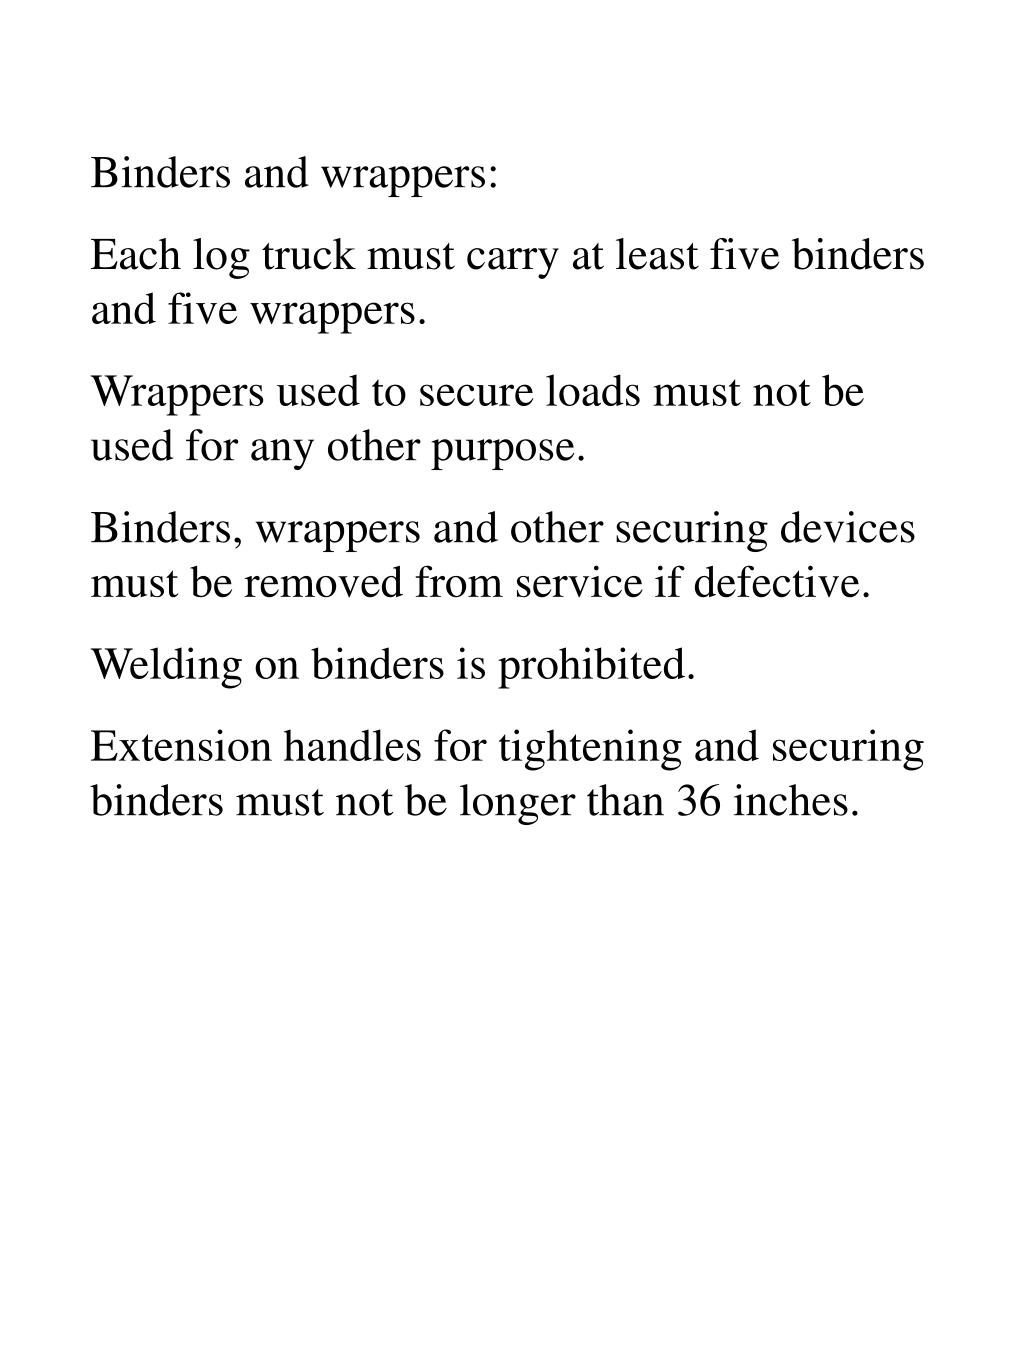 Binders and wrappers: